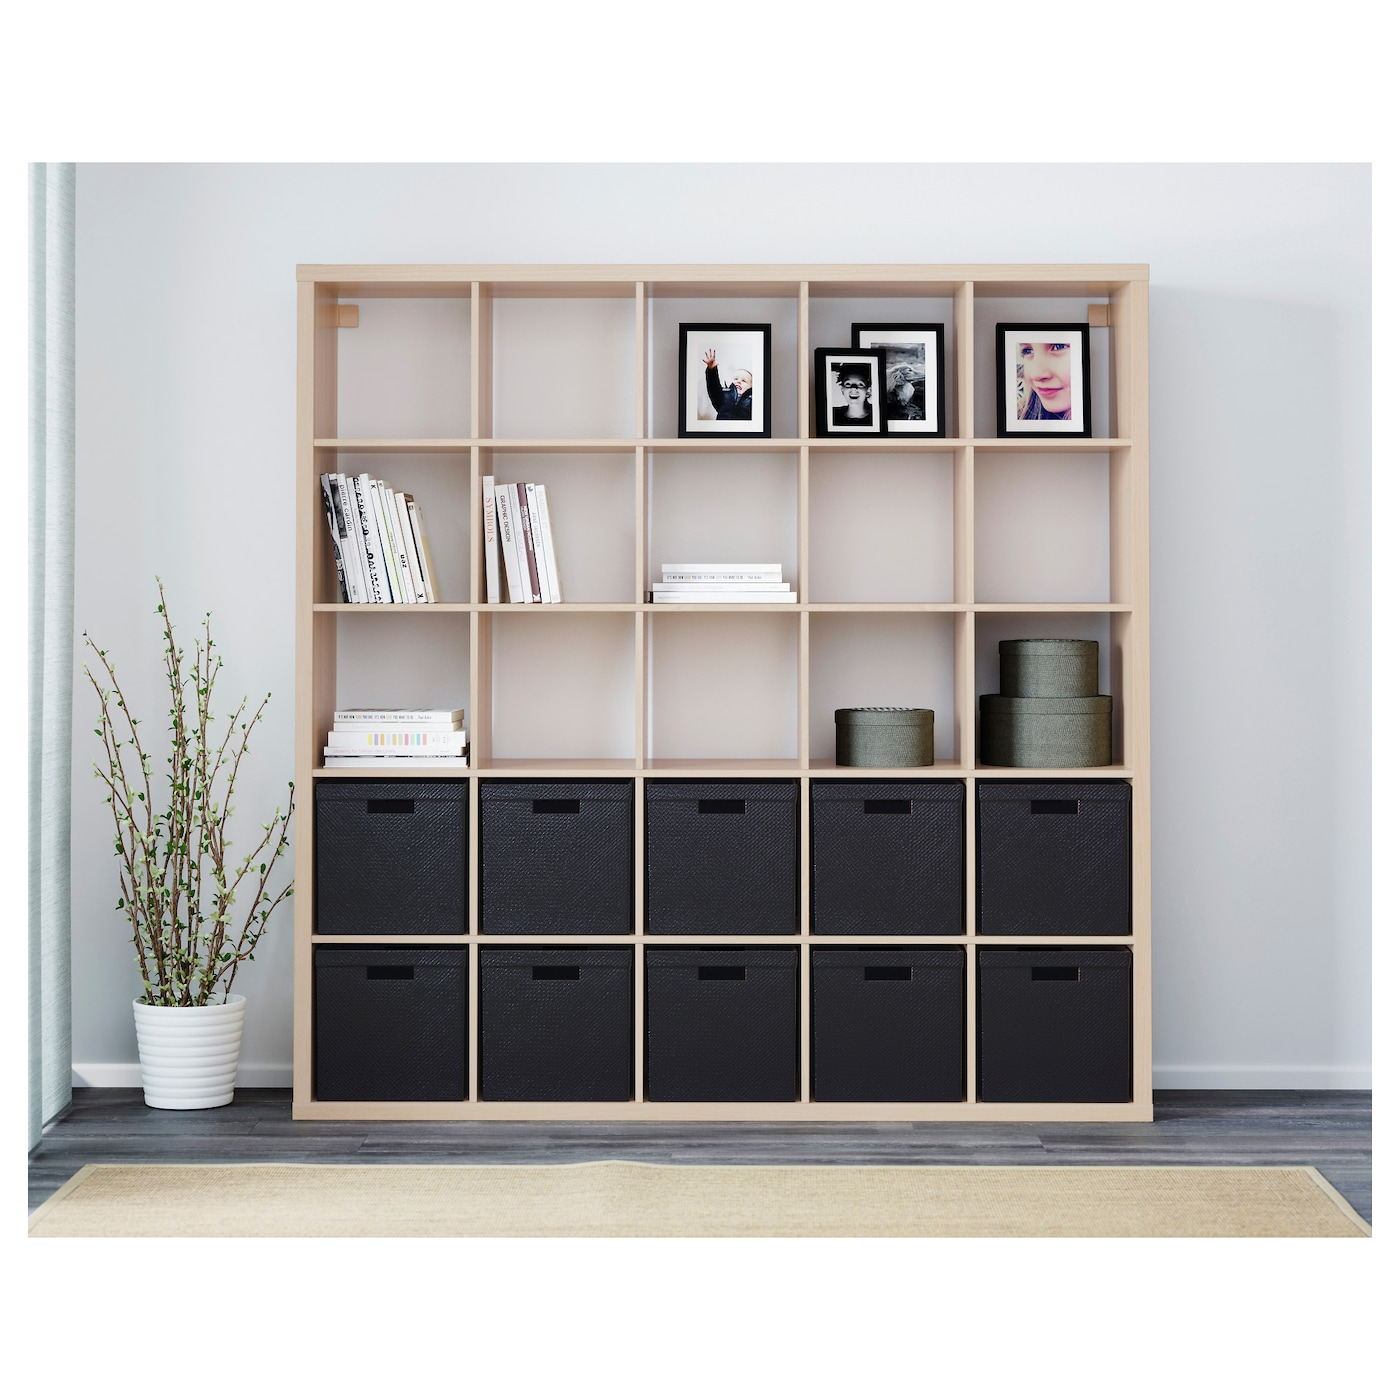 kallax shelving unit white stained oak effect 182 x 182 cm ikea. Black Bedroom Furniture Sets. Home Design Ideas